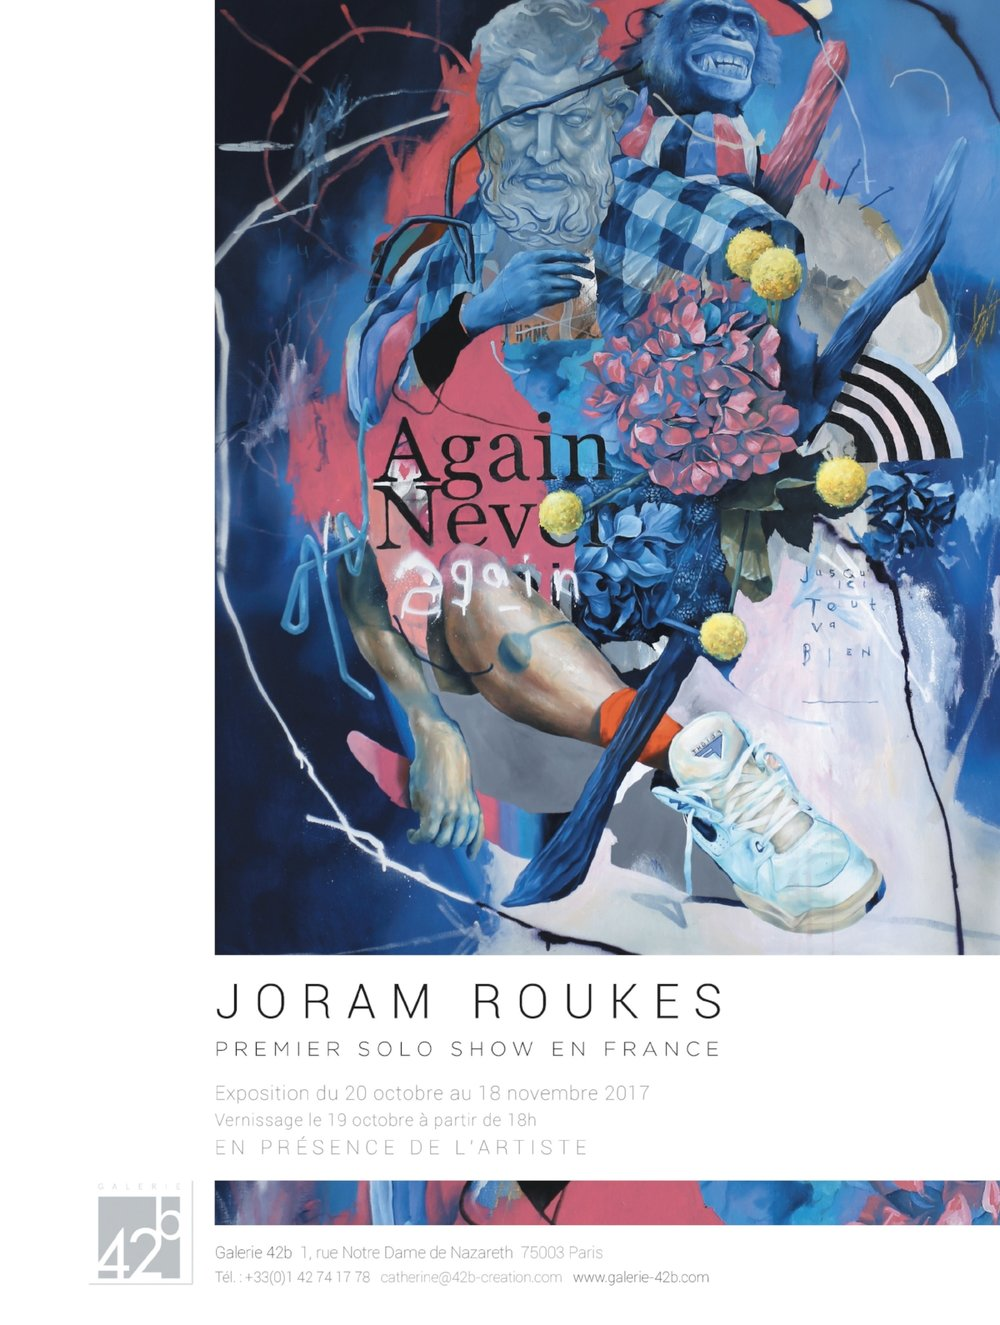 Invitation JORAM ROUKES - AGAIN NEVER AGAIN